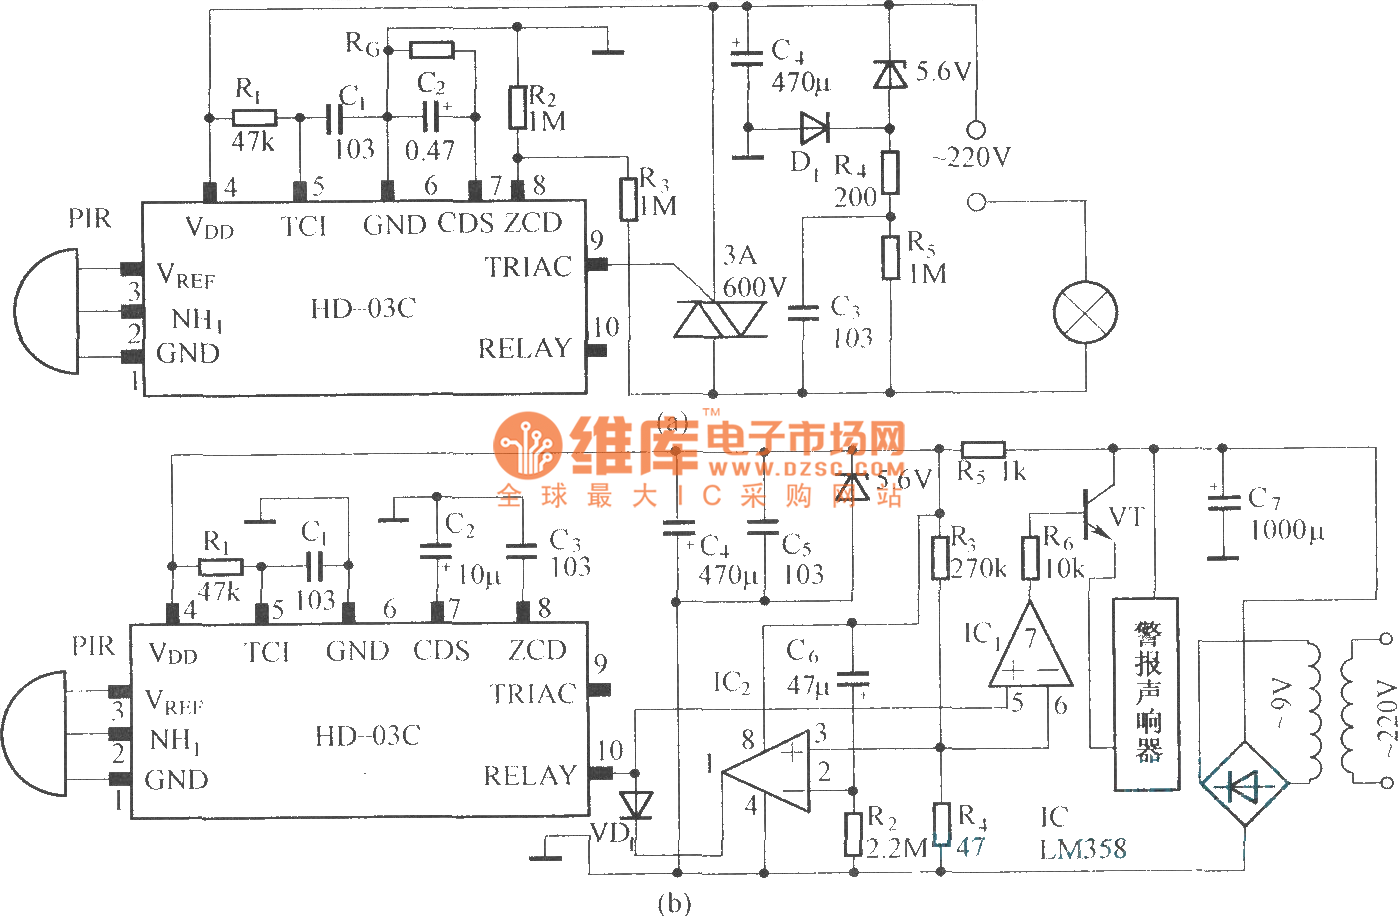 Module Applications Circuit Diagram Basiccircuit Fotos This Is A Diy Simple Stun Gun Schematic Hd 03c Application Basic Seekic Com